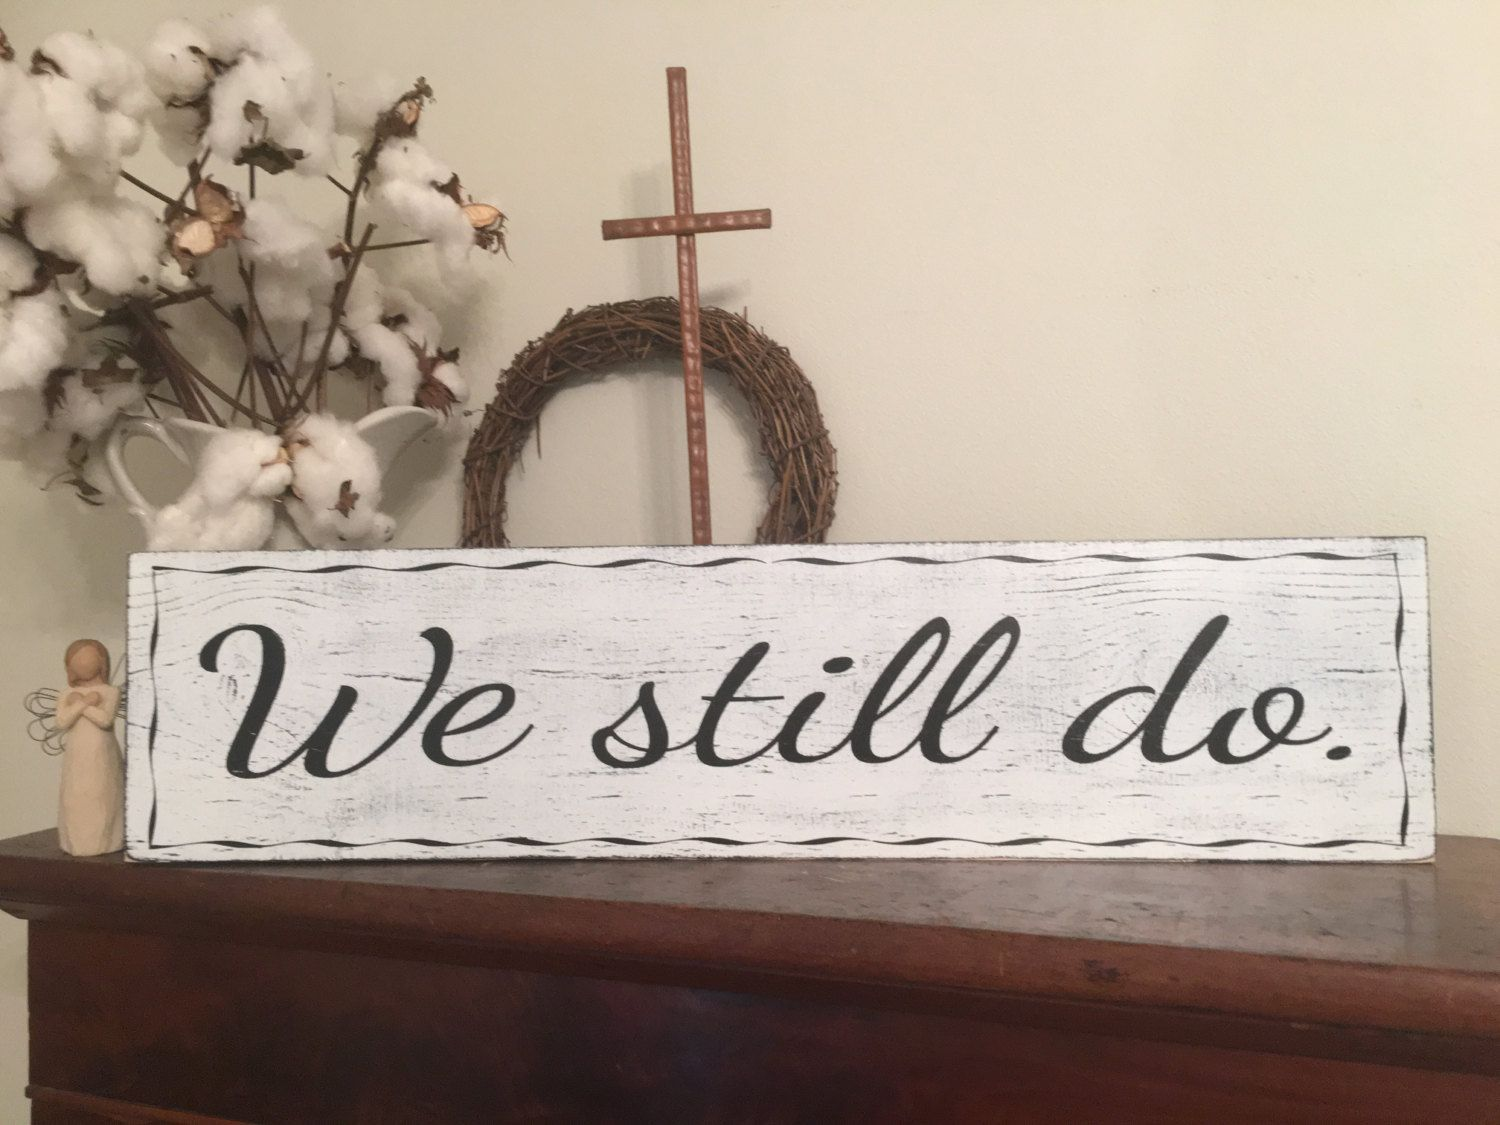 Wall Signs Decor Inspiration We Still Do Sign Fixer Upper Inspired Signs30X725 Rustic Wood Design Ideas